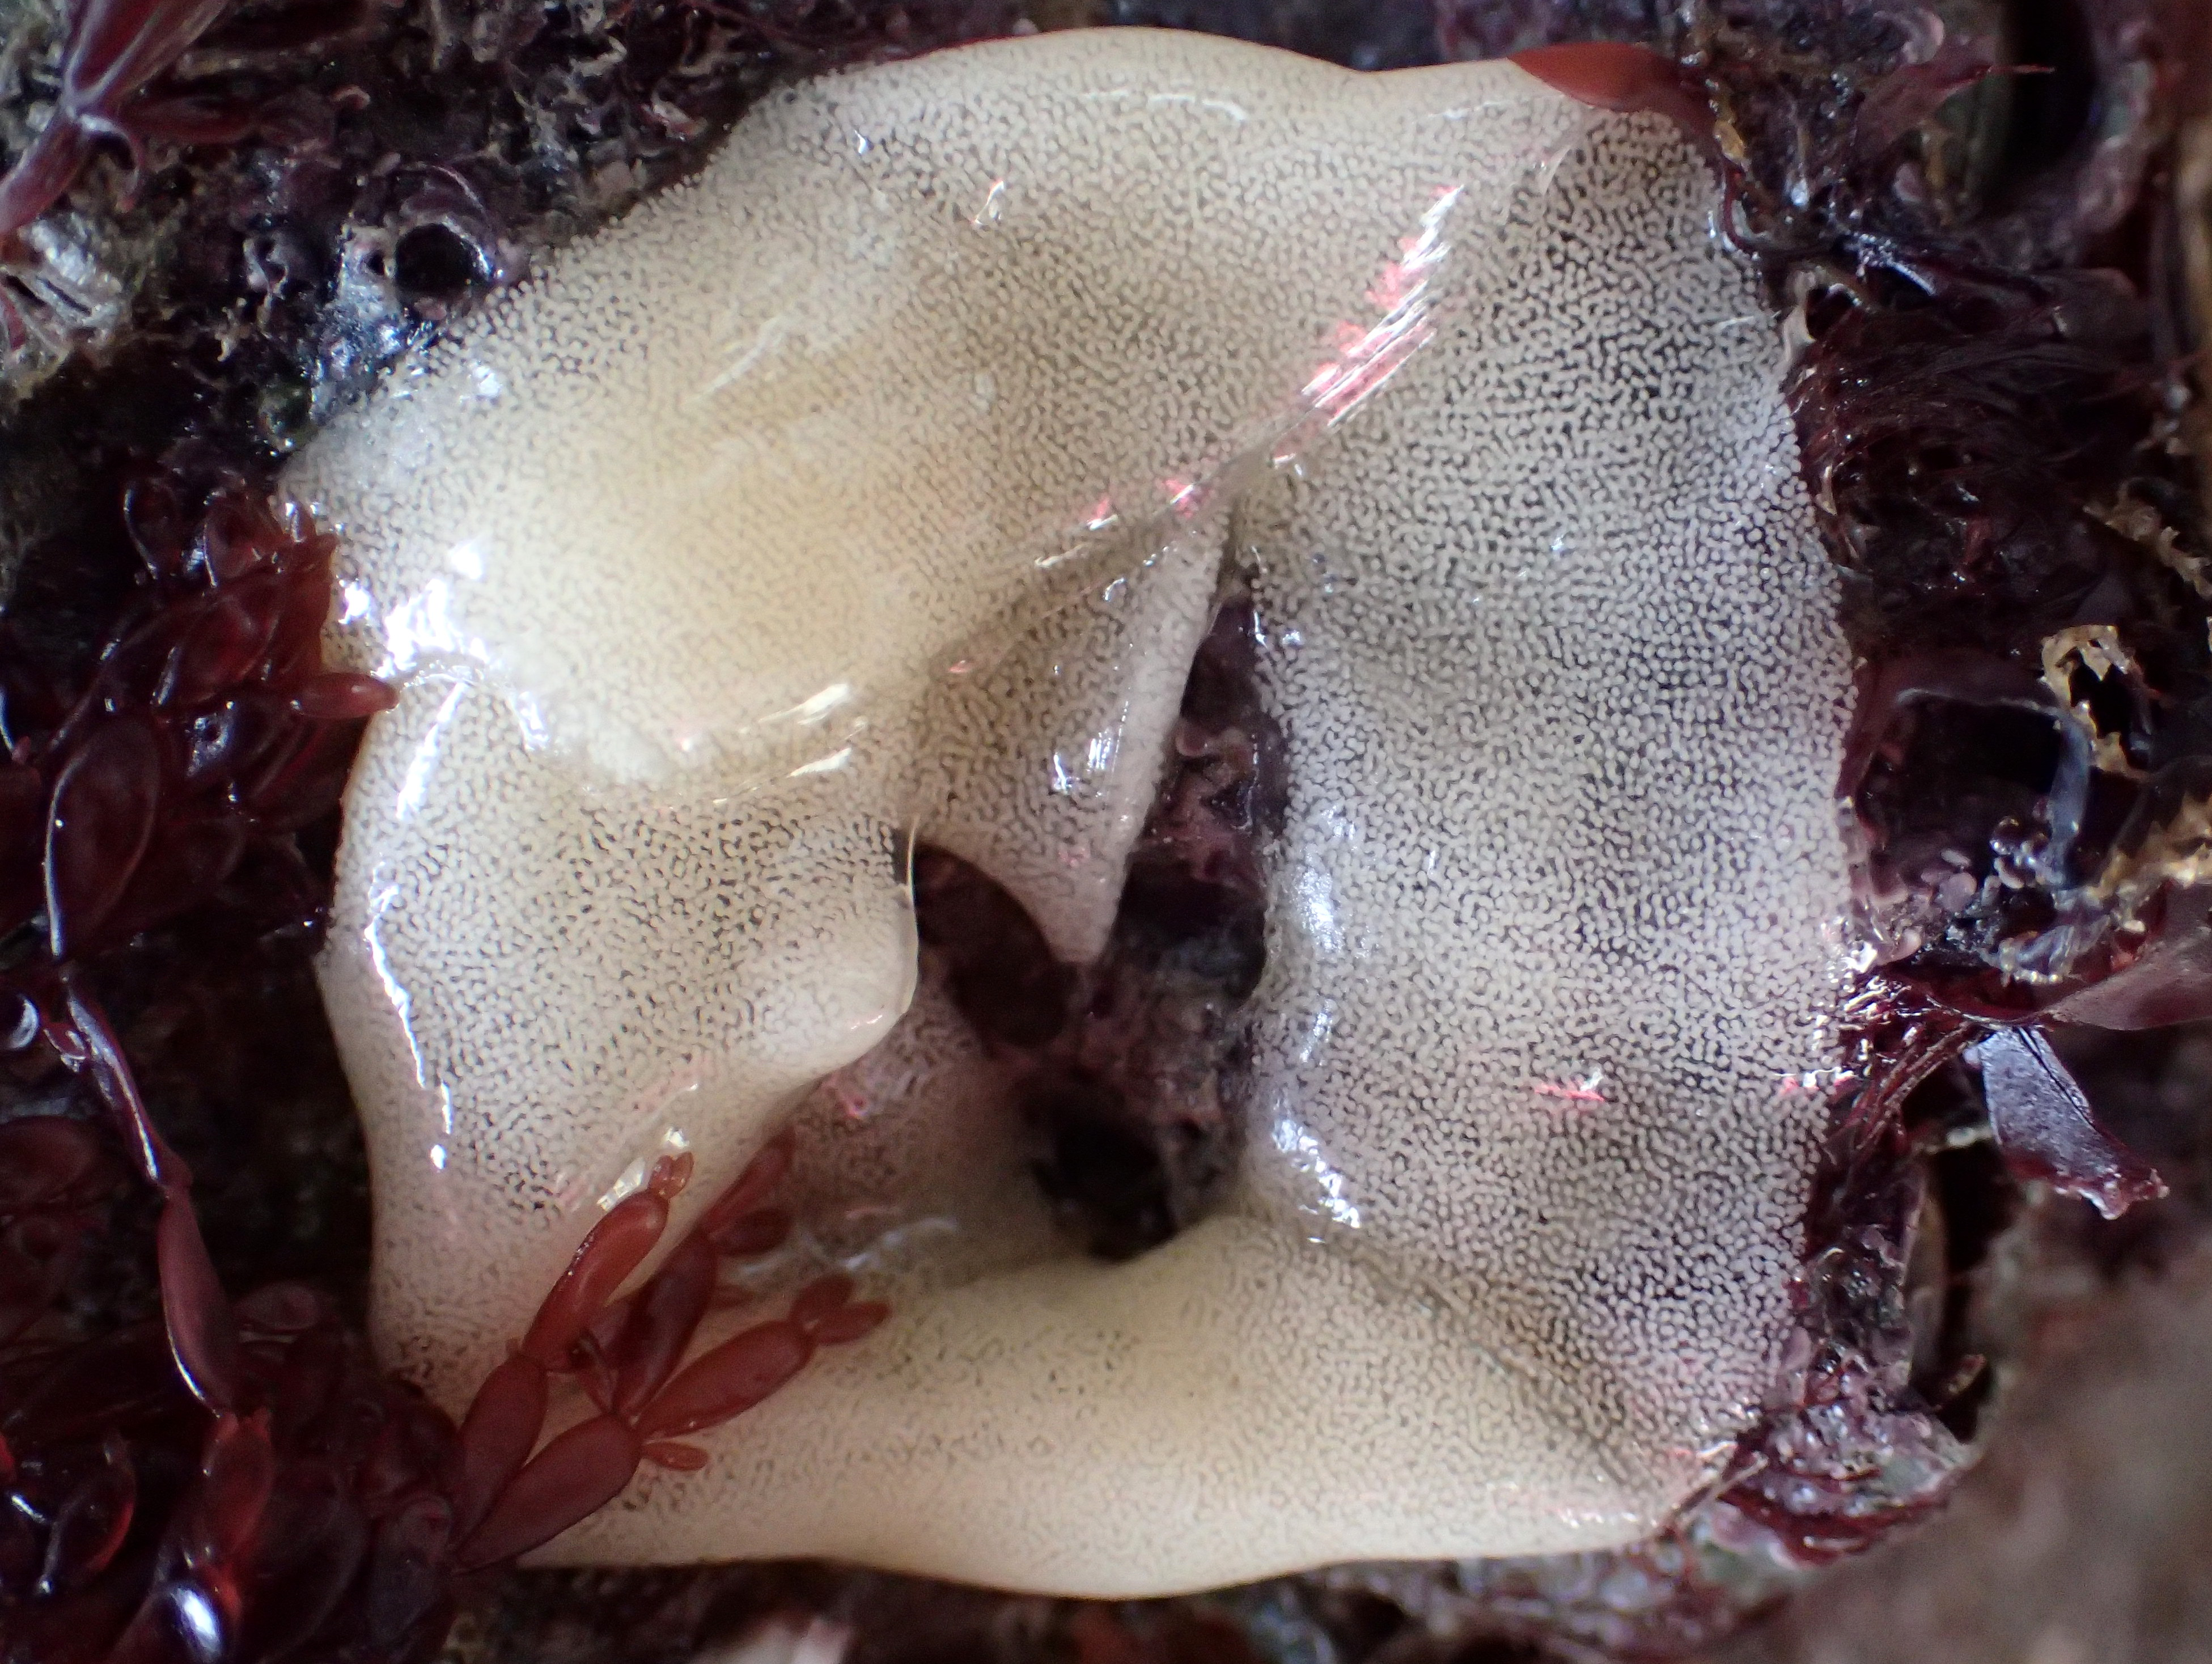 Go slowly and look closely - this little ring of jelly contains thousands of eggs from a sea lemon (a type of slug).